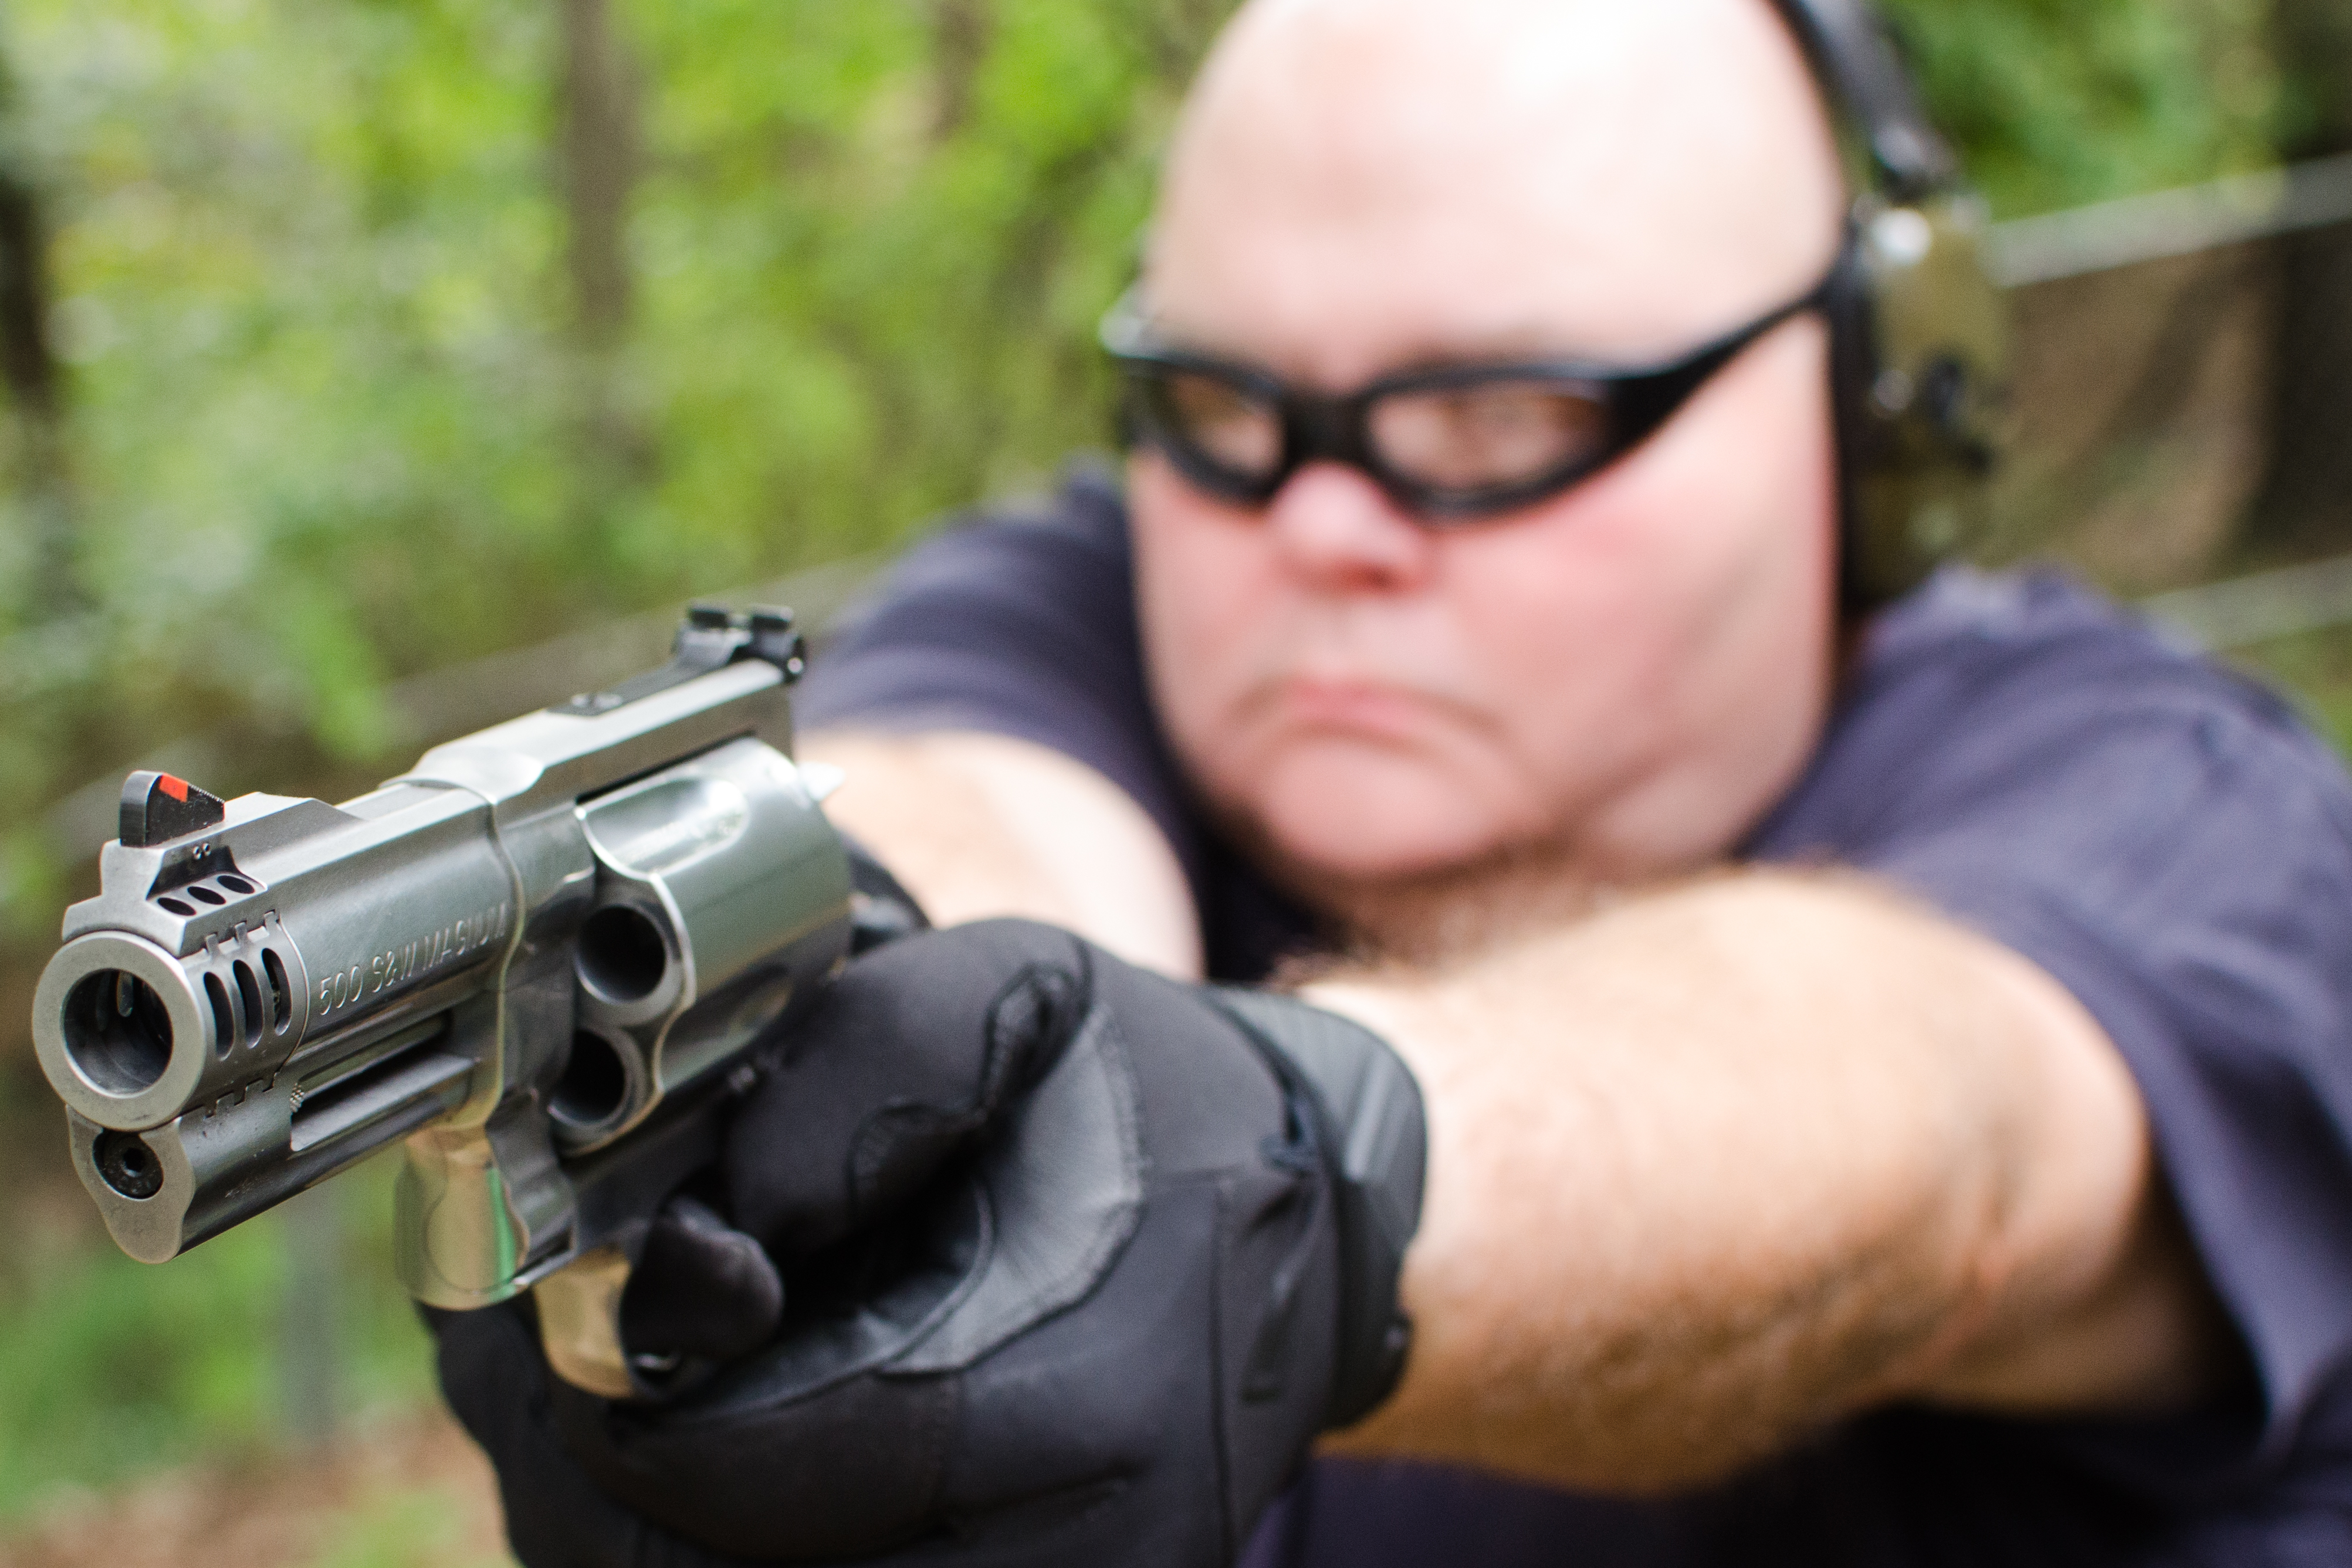 The 4-inch S&W .500 Magnum delivers wrist-wrenching power, but can be a handful to fire.